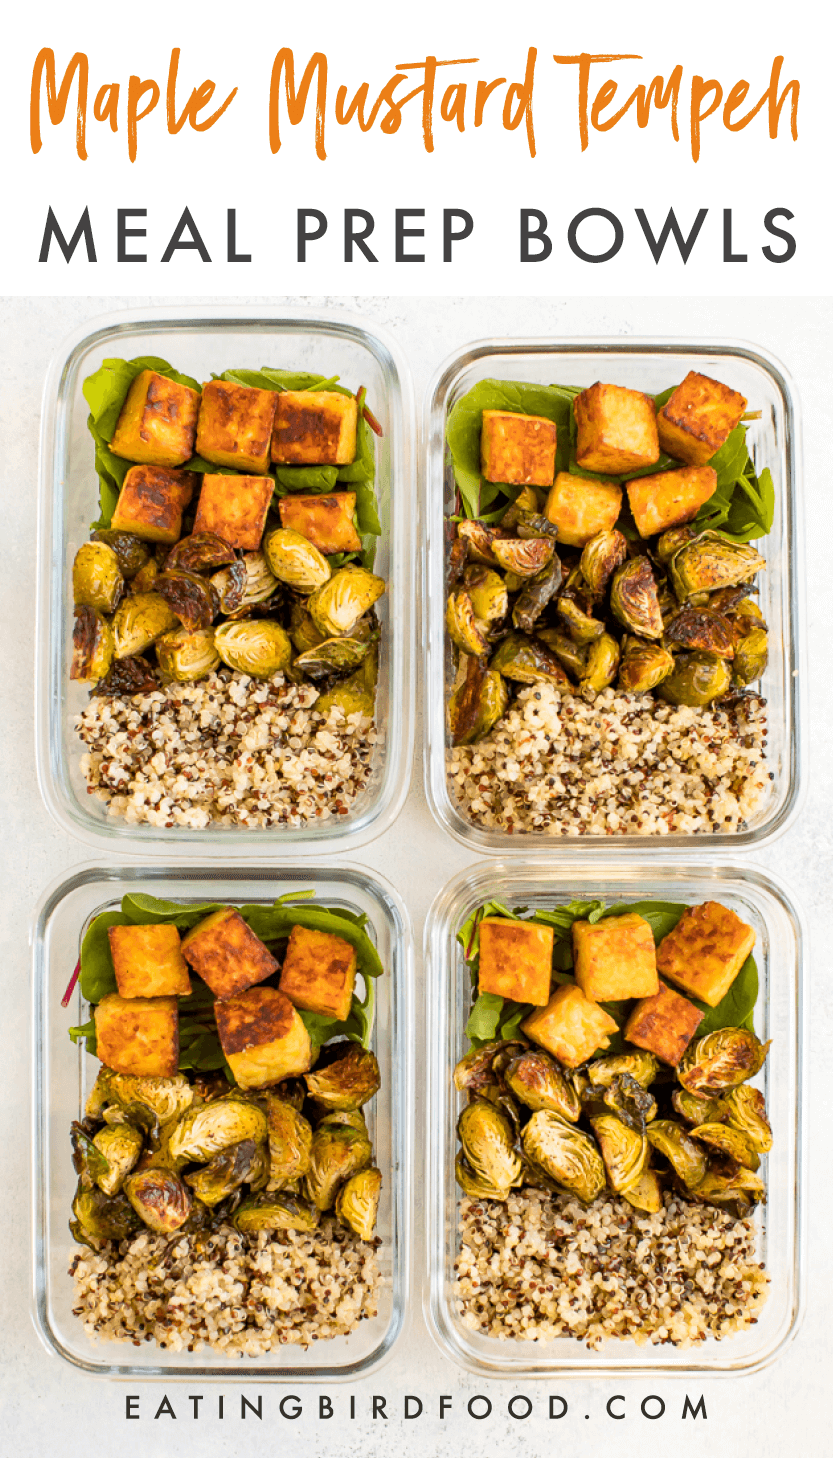 Maple mustard tempeh meal prep bowls with roasted brussels sprouts, quinoa and greens. Make this recipe on Sunday and eat well all week!#mealprep Maple mustard tempeh meal prep bowls with roasted brussels sprouts, quinoa and greens. Make this recipe on Sunday and eat well all week!#mealprep